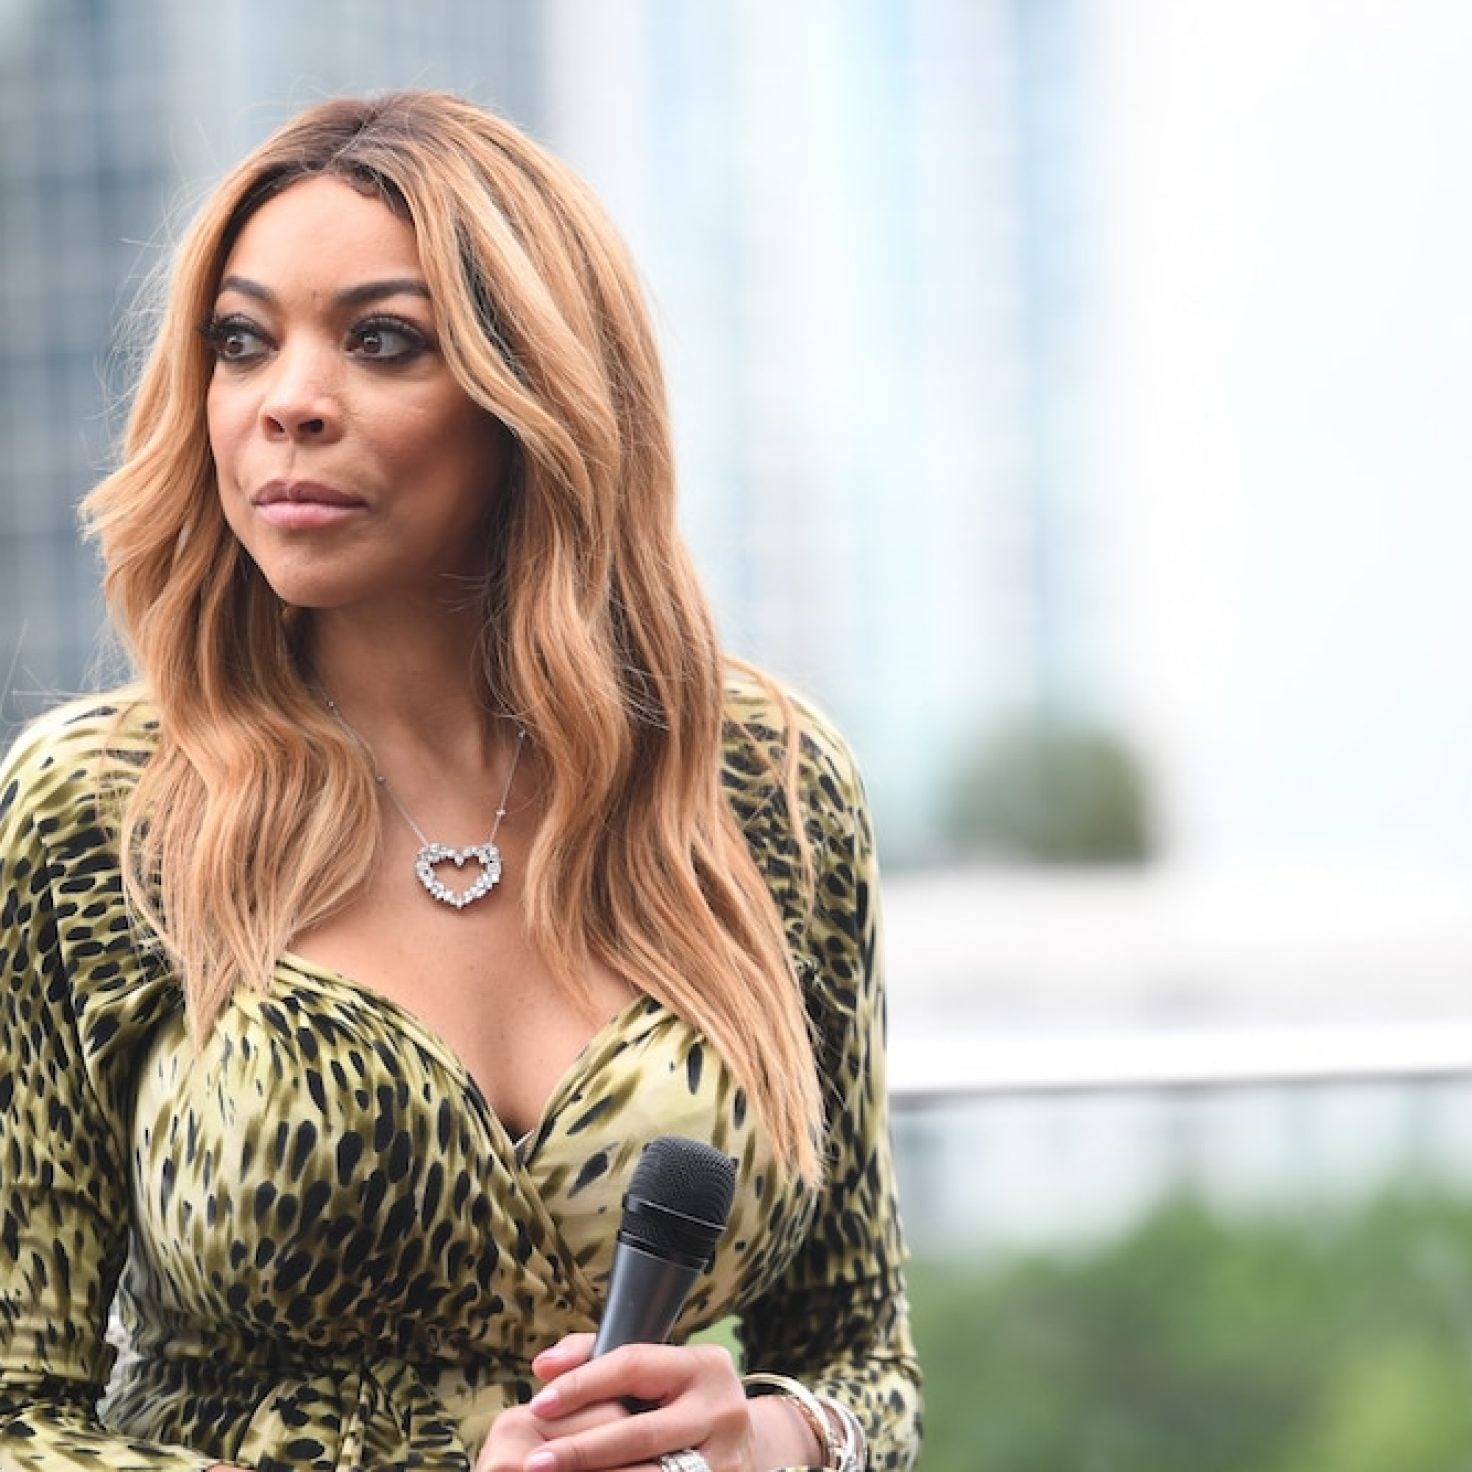 Bergdorf Goodman Promises To Investigate After Wendy Williams Claims She And Nene Leakes Were Followed